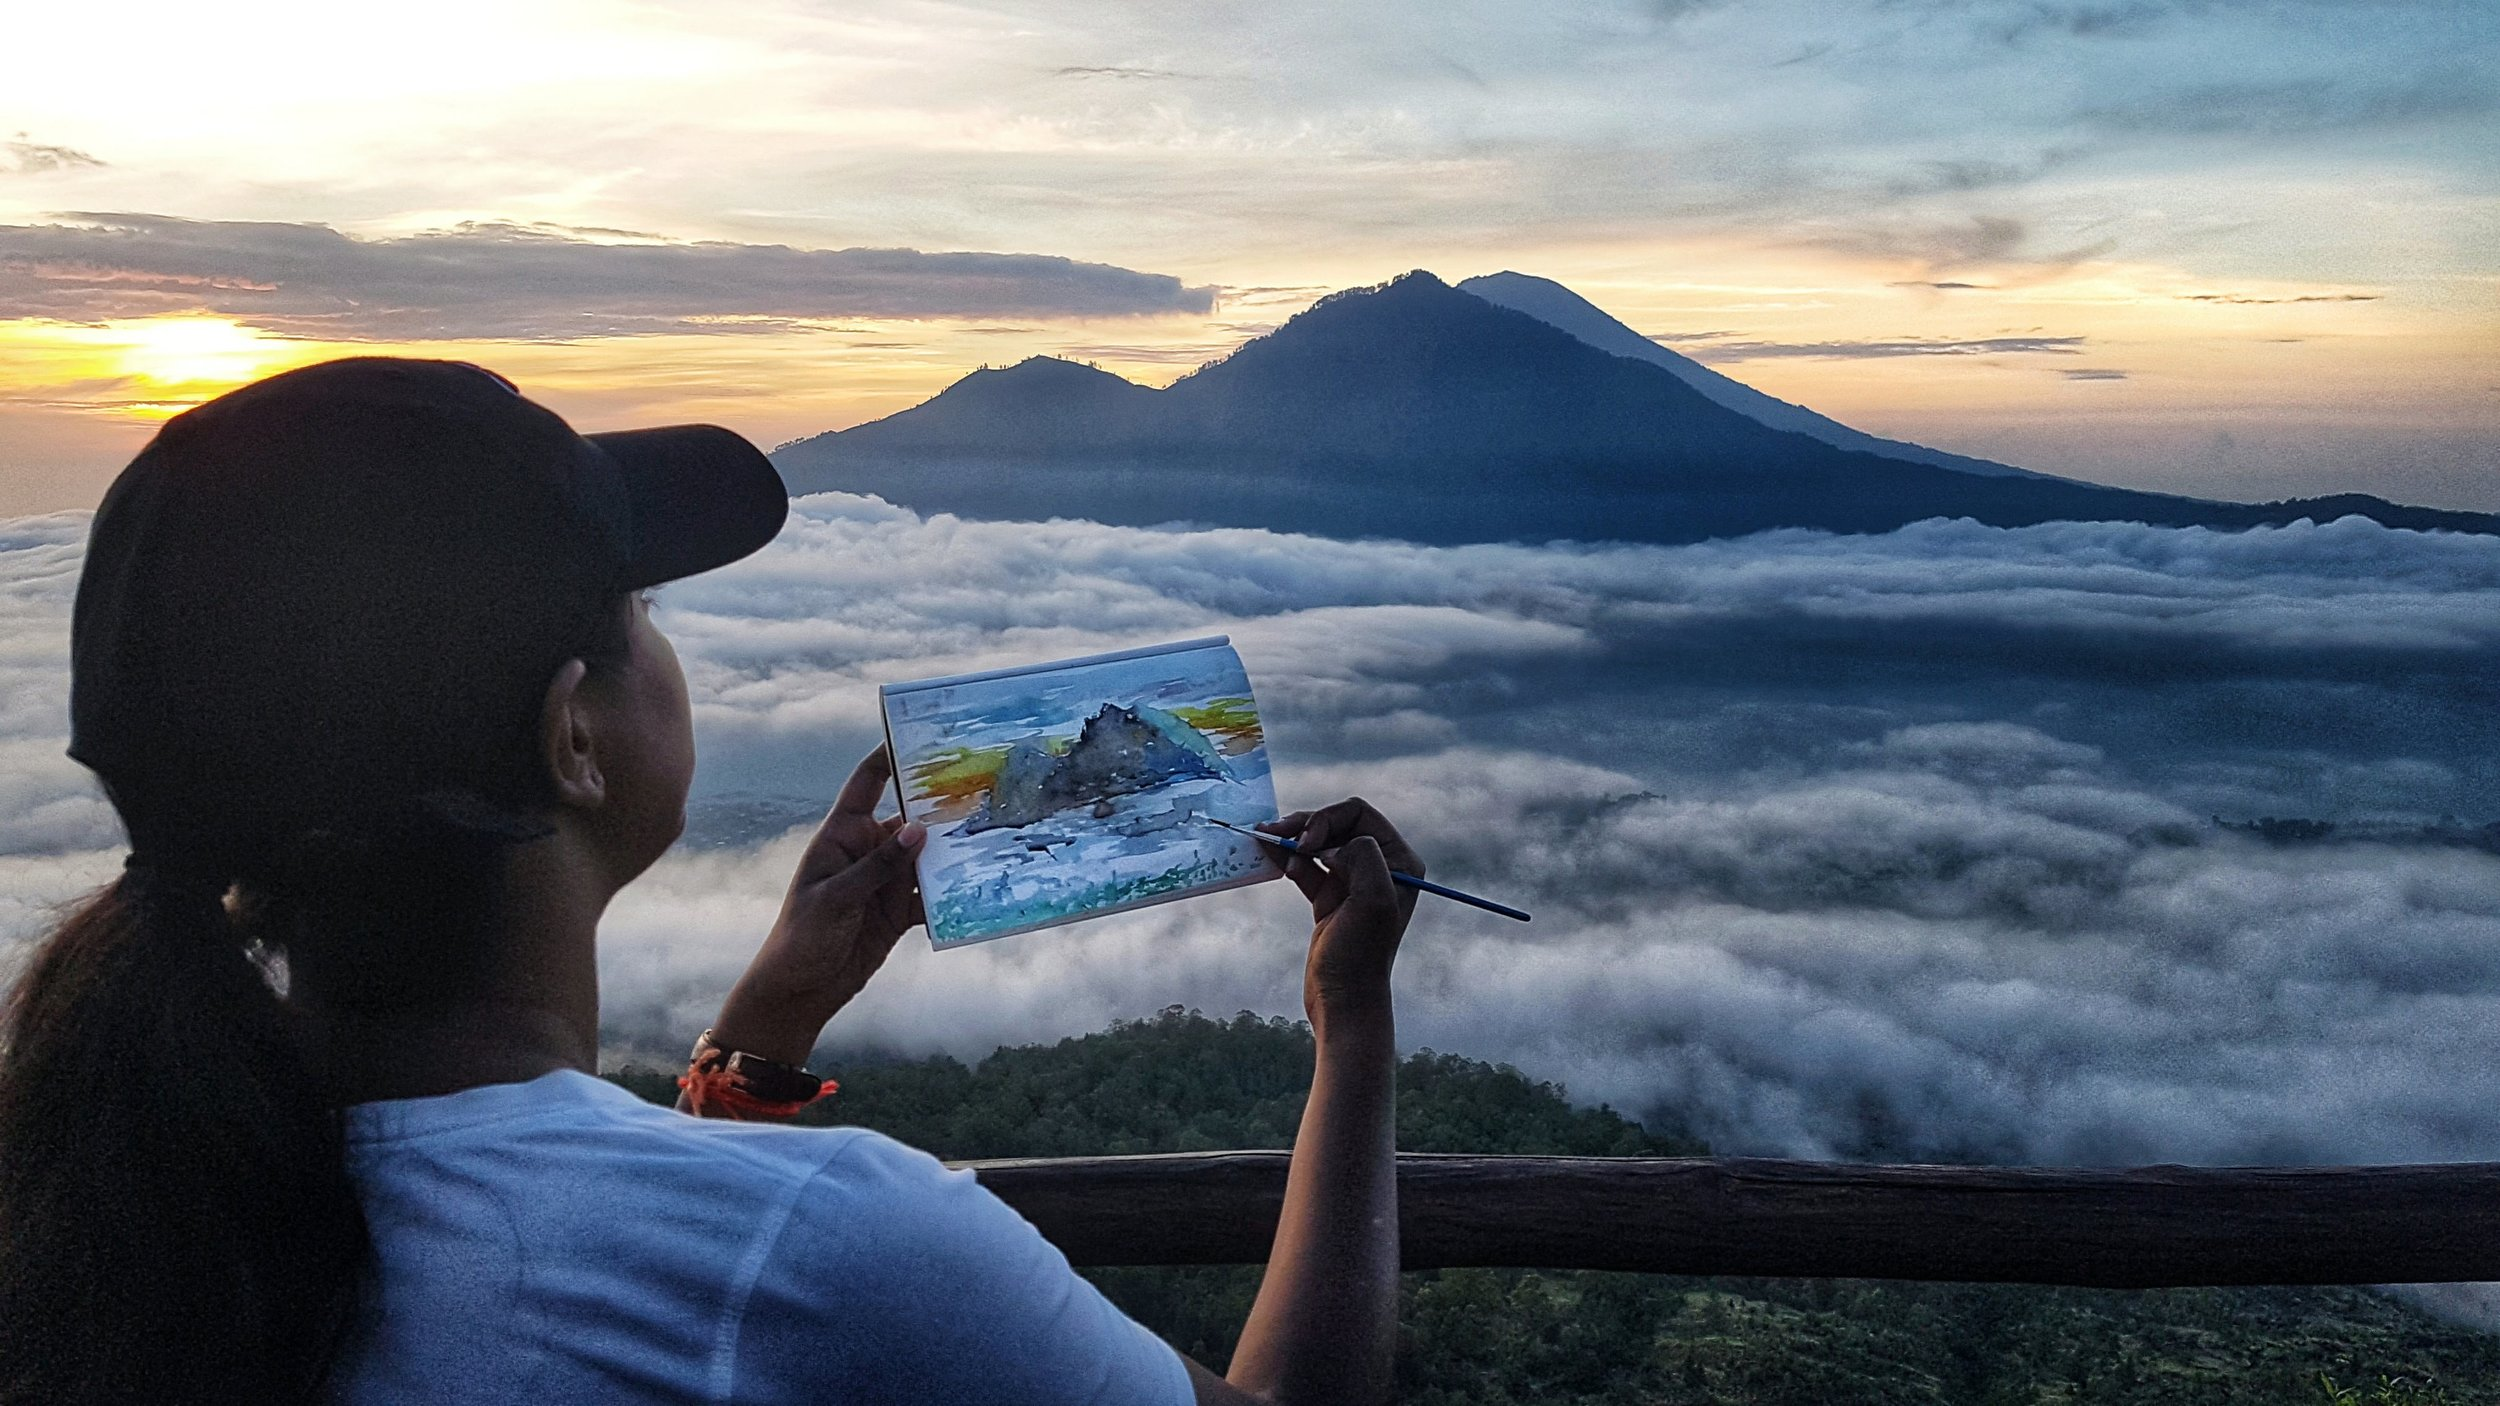 Thivs Travelling Canvas Series : Bali , Indonesia: 3 hour hike to see this stunning sunrise above the clouds